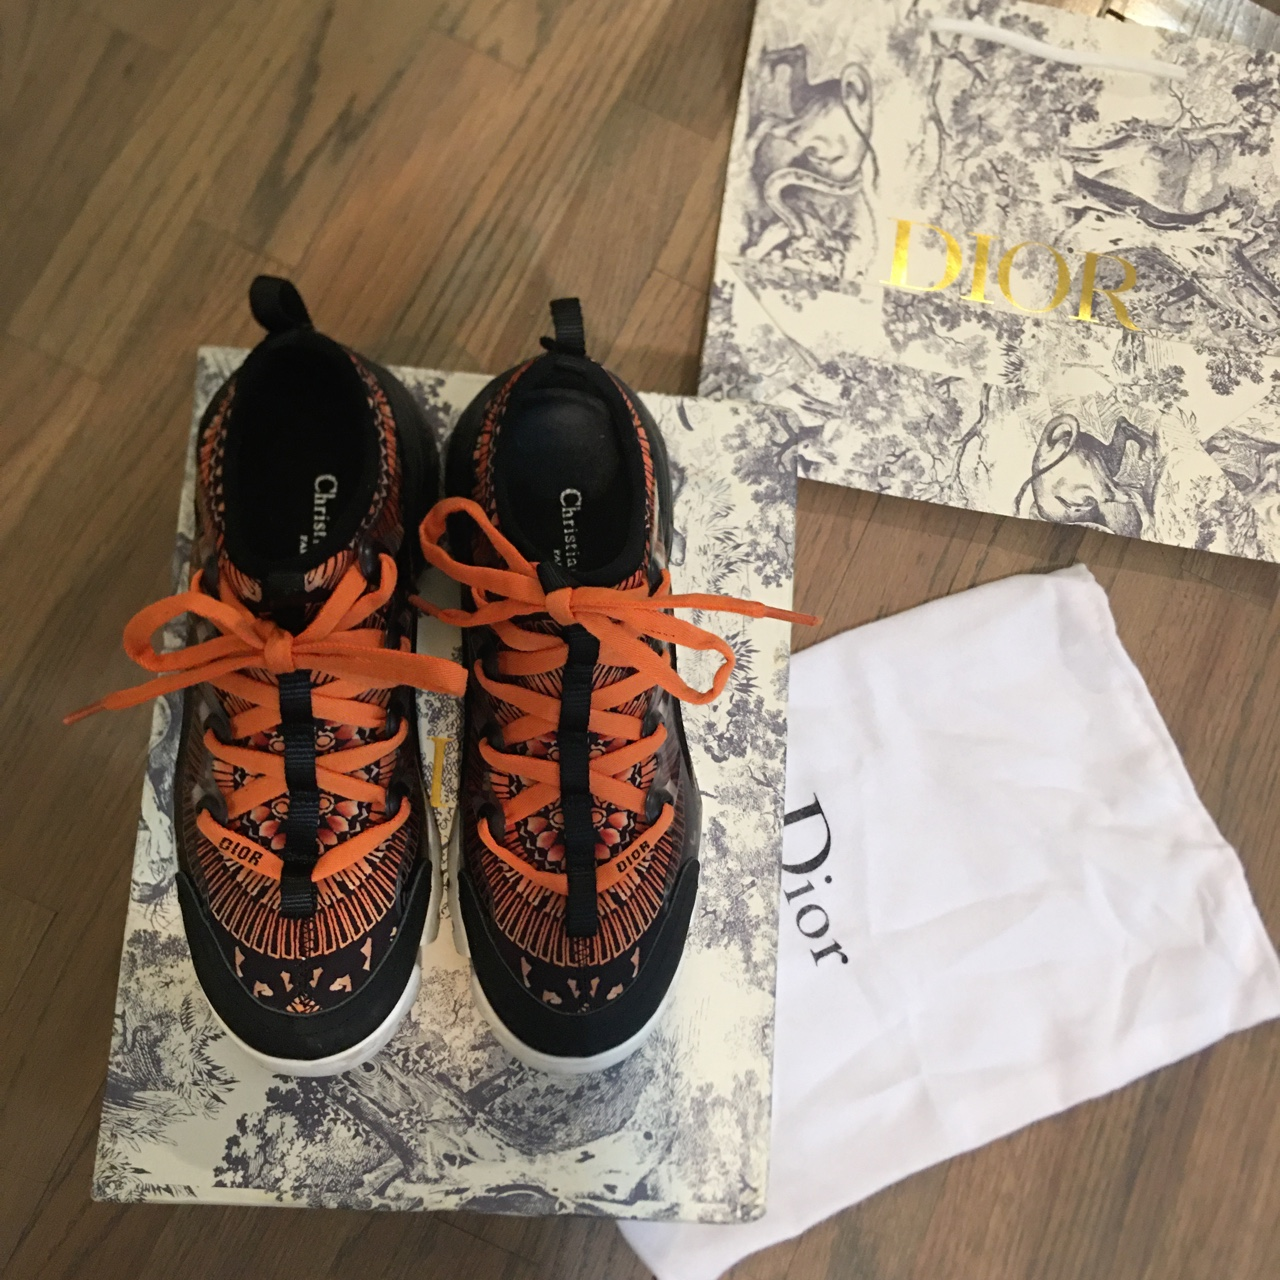 Product Image 1 - B22 Dior sneaker (price just